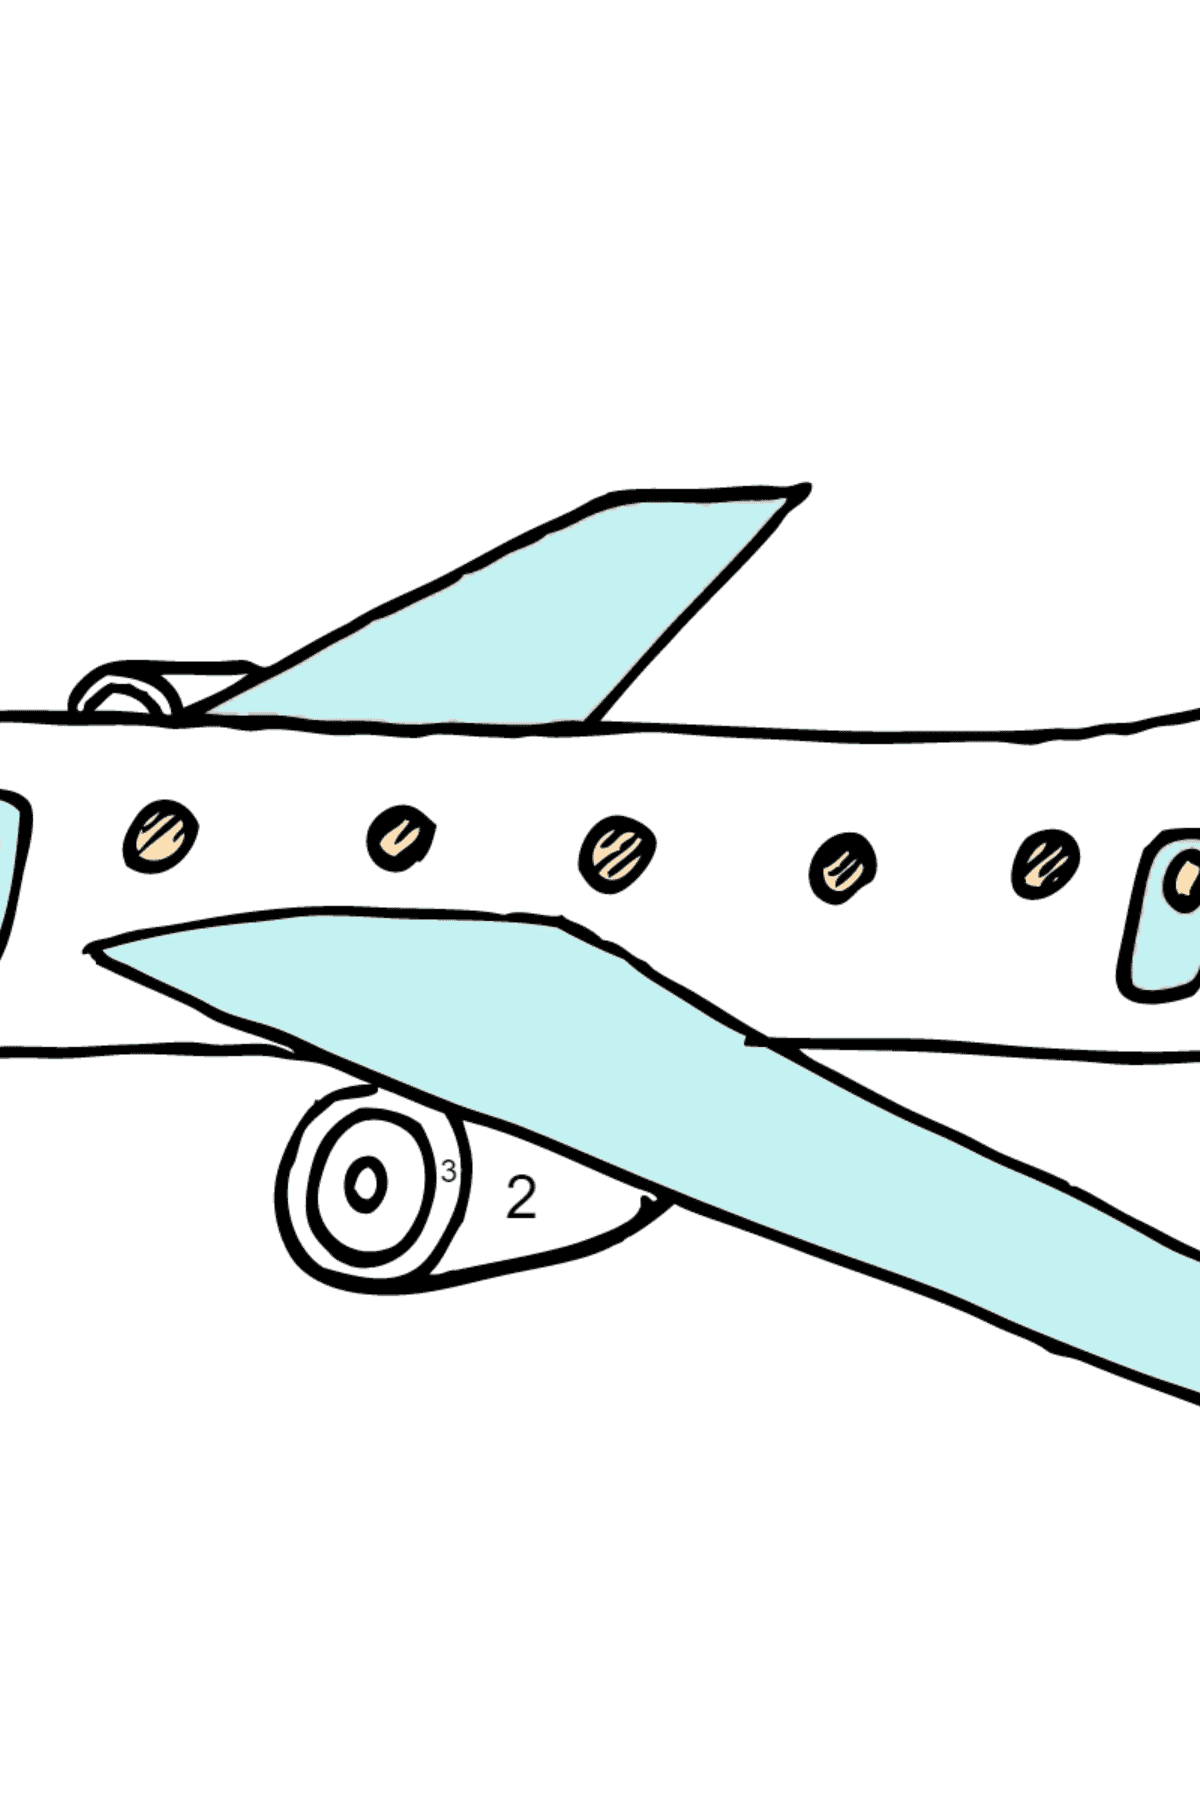 Coloring Page - A Commercial Jet - Coloring by Numbers for Children